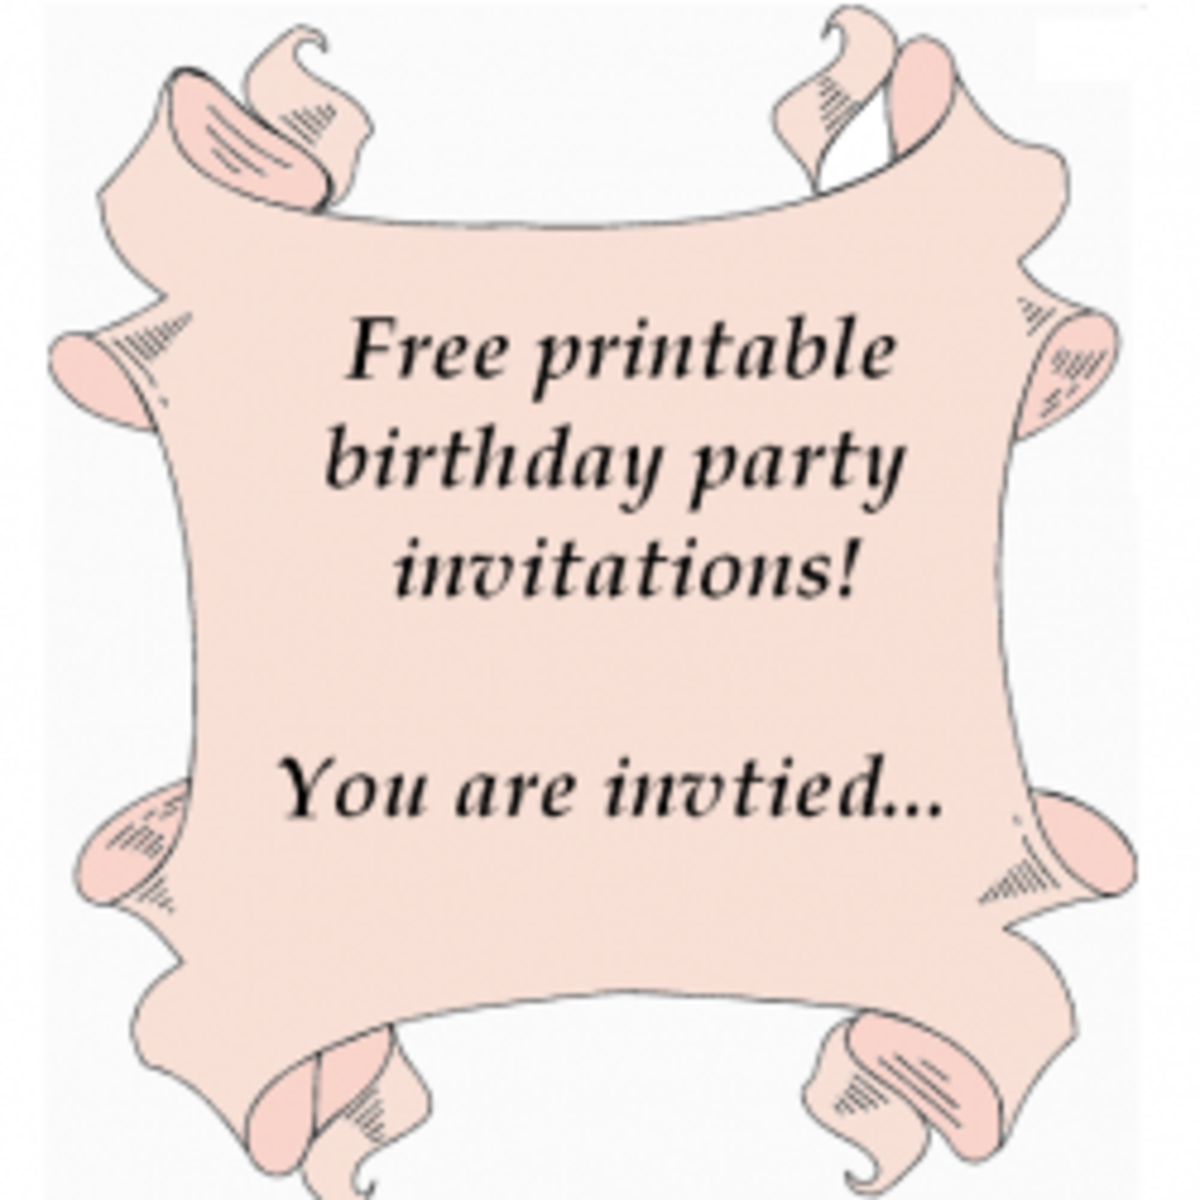 Free Printable Birthday Party Invitations Templates HubPages - Free printable birthday party invitations templates